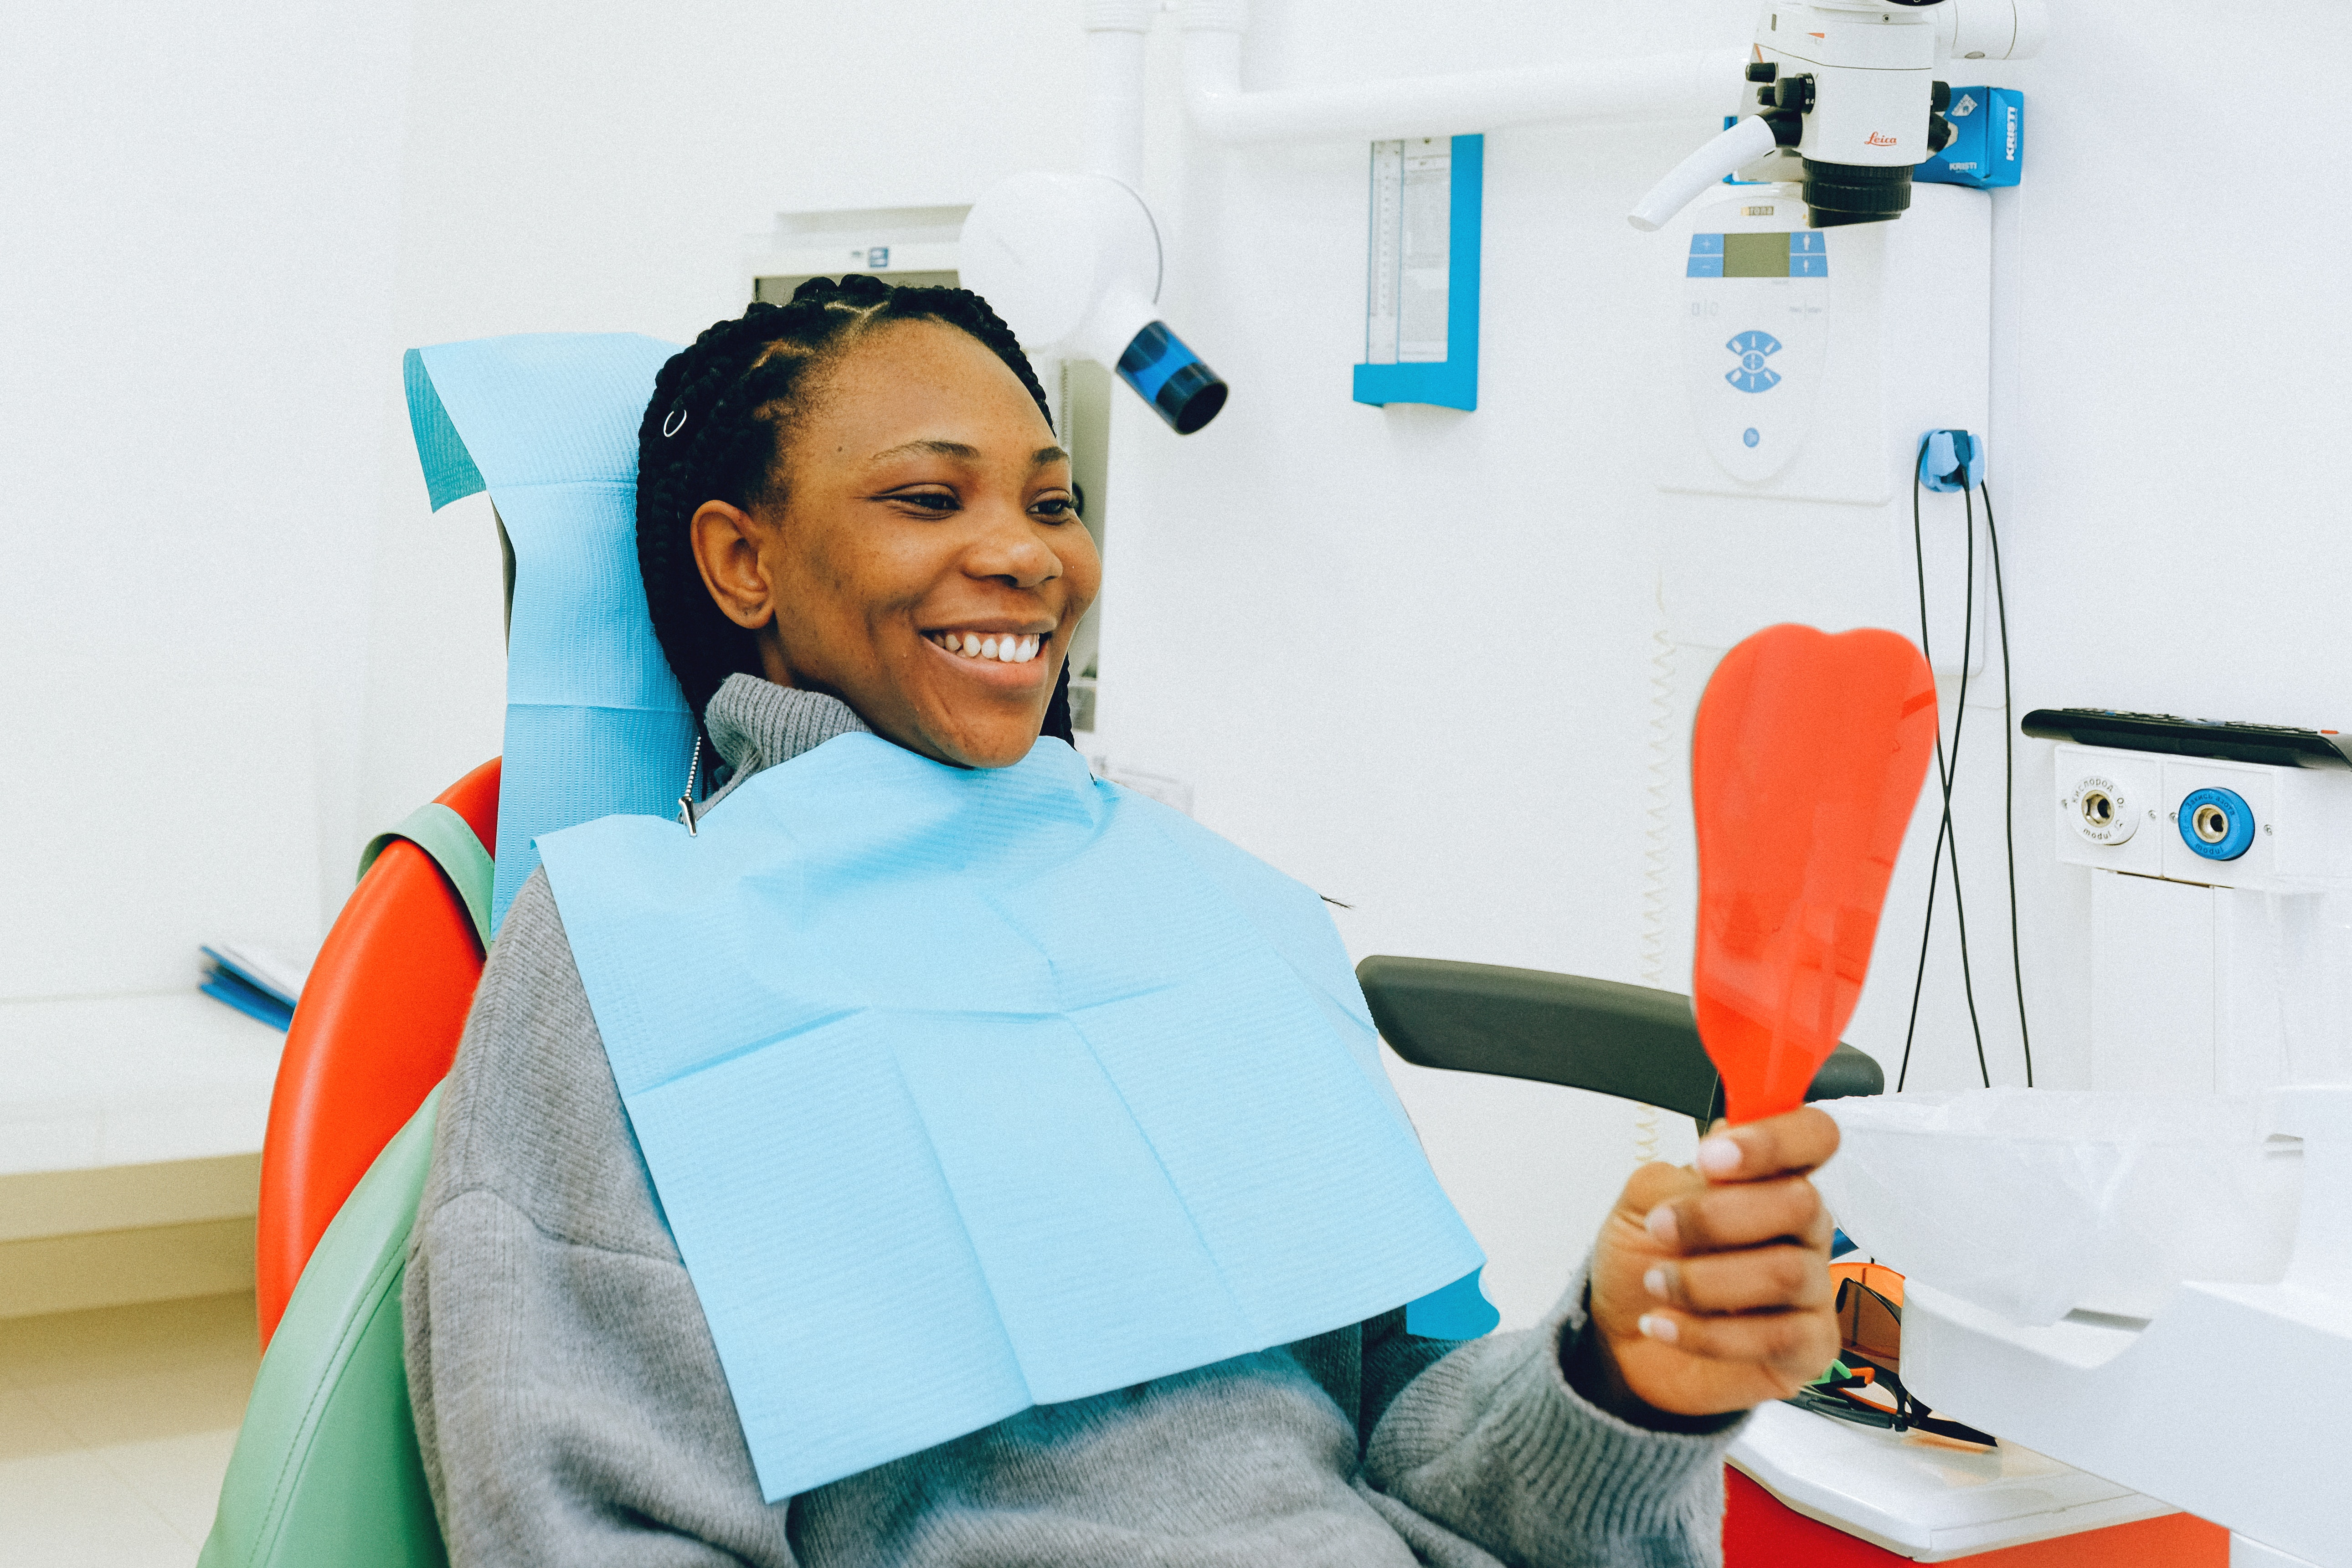 Top 5 Dentists in Lagos: All You Need To Know About These Dental Clinics